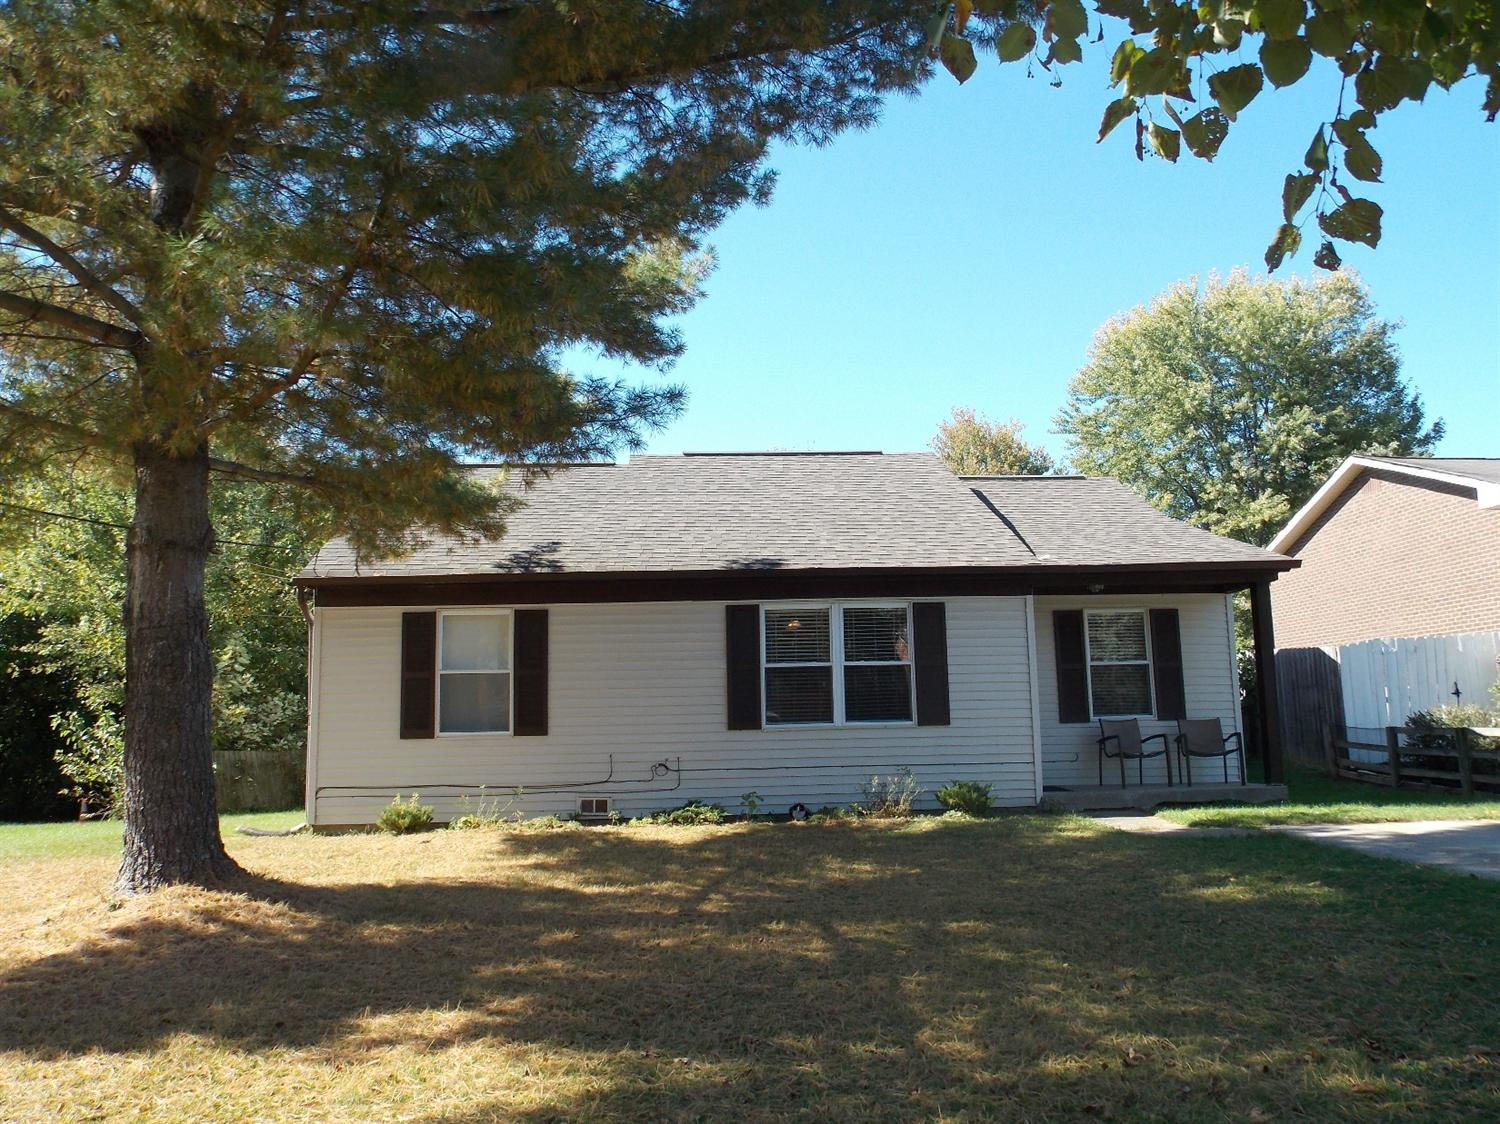 Photo 1 for 6513 Rosetta Dr Burlington, KY 41005